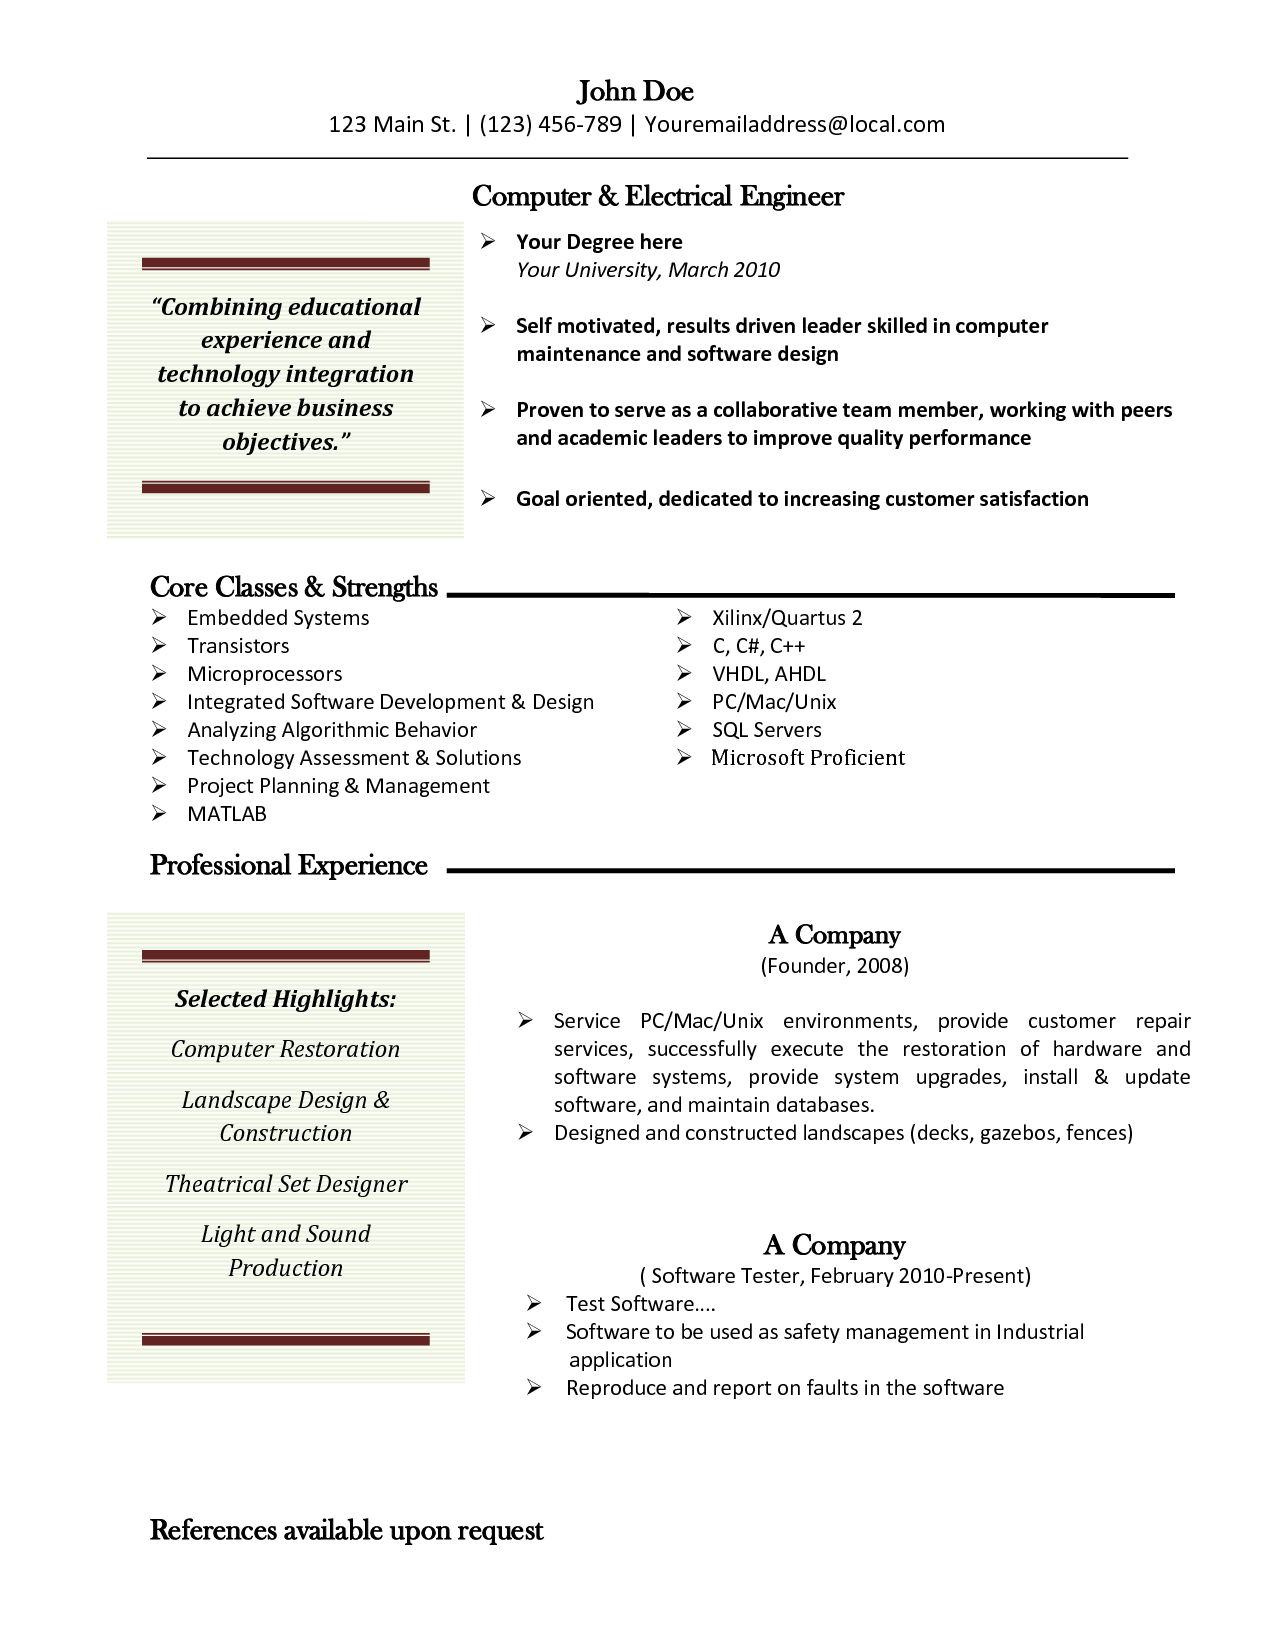 Resume Templates For Openoffice Free  HttpGetresumetemplate